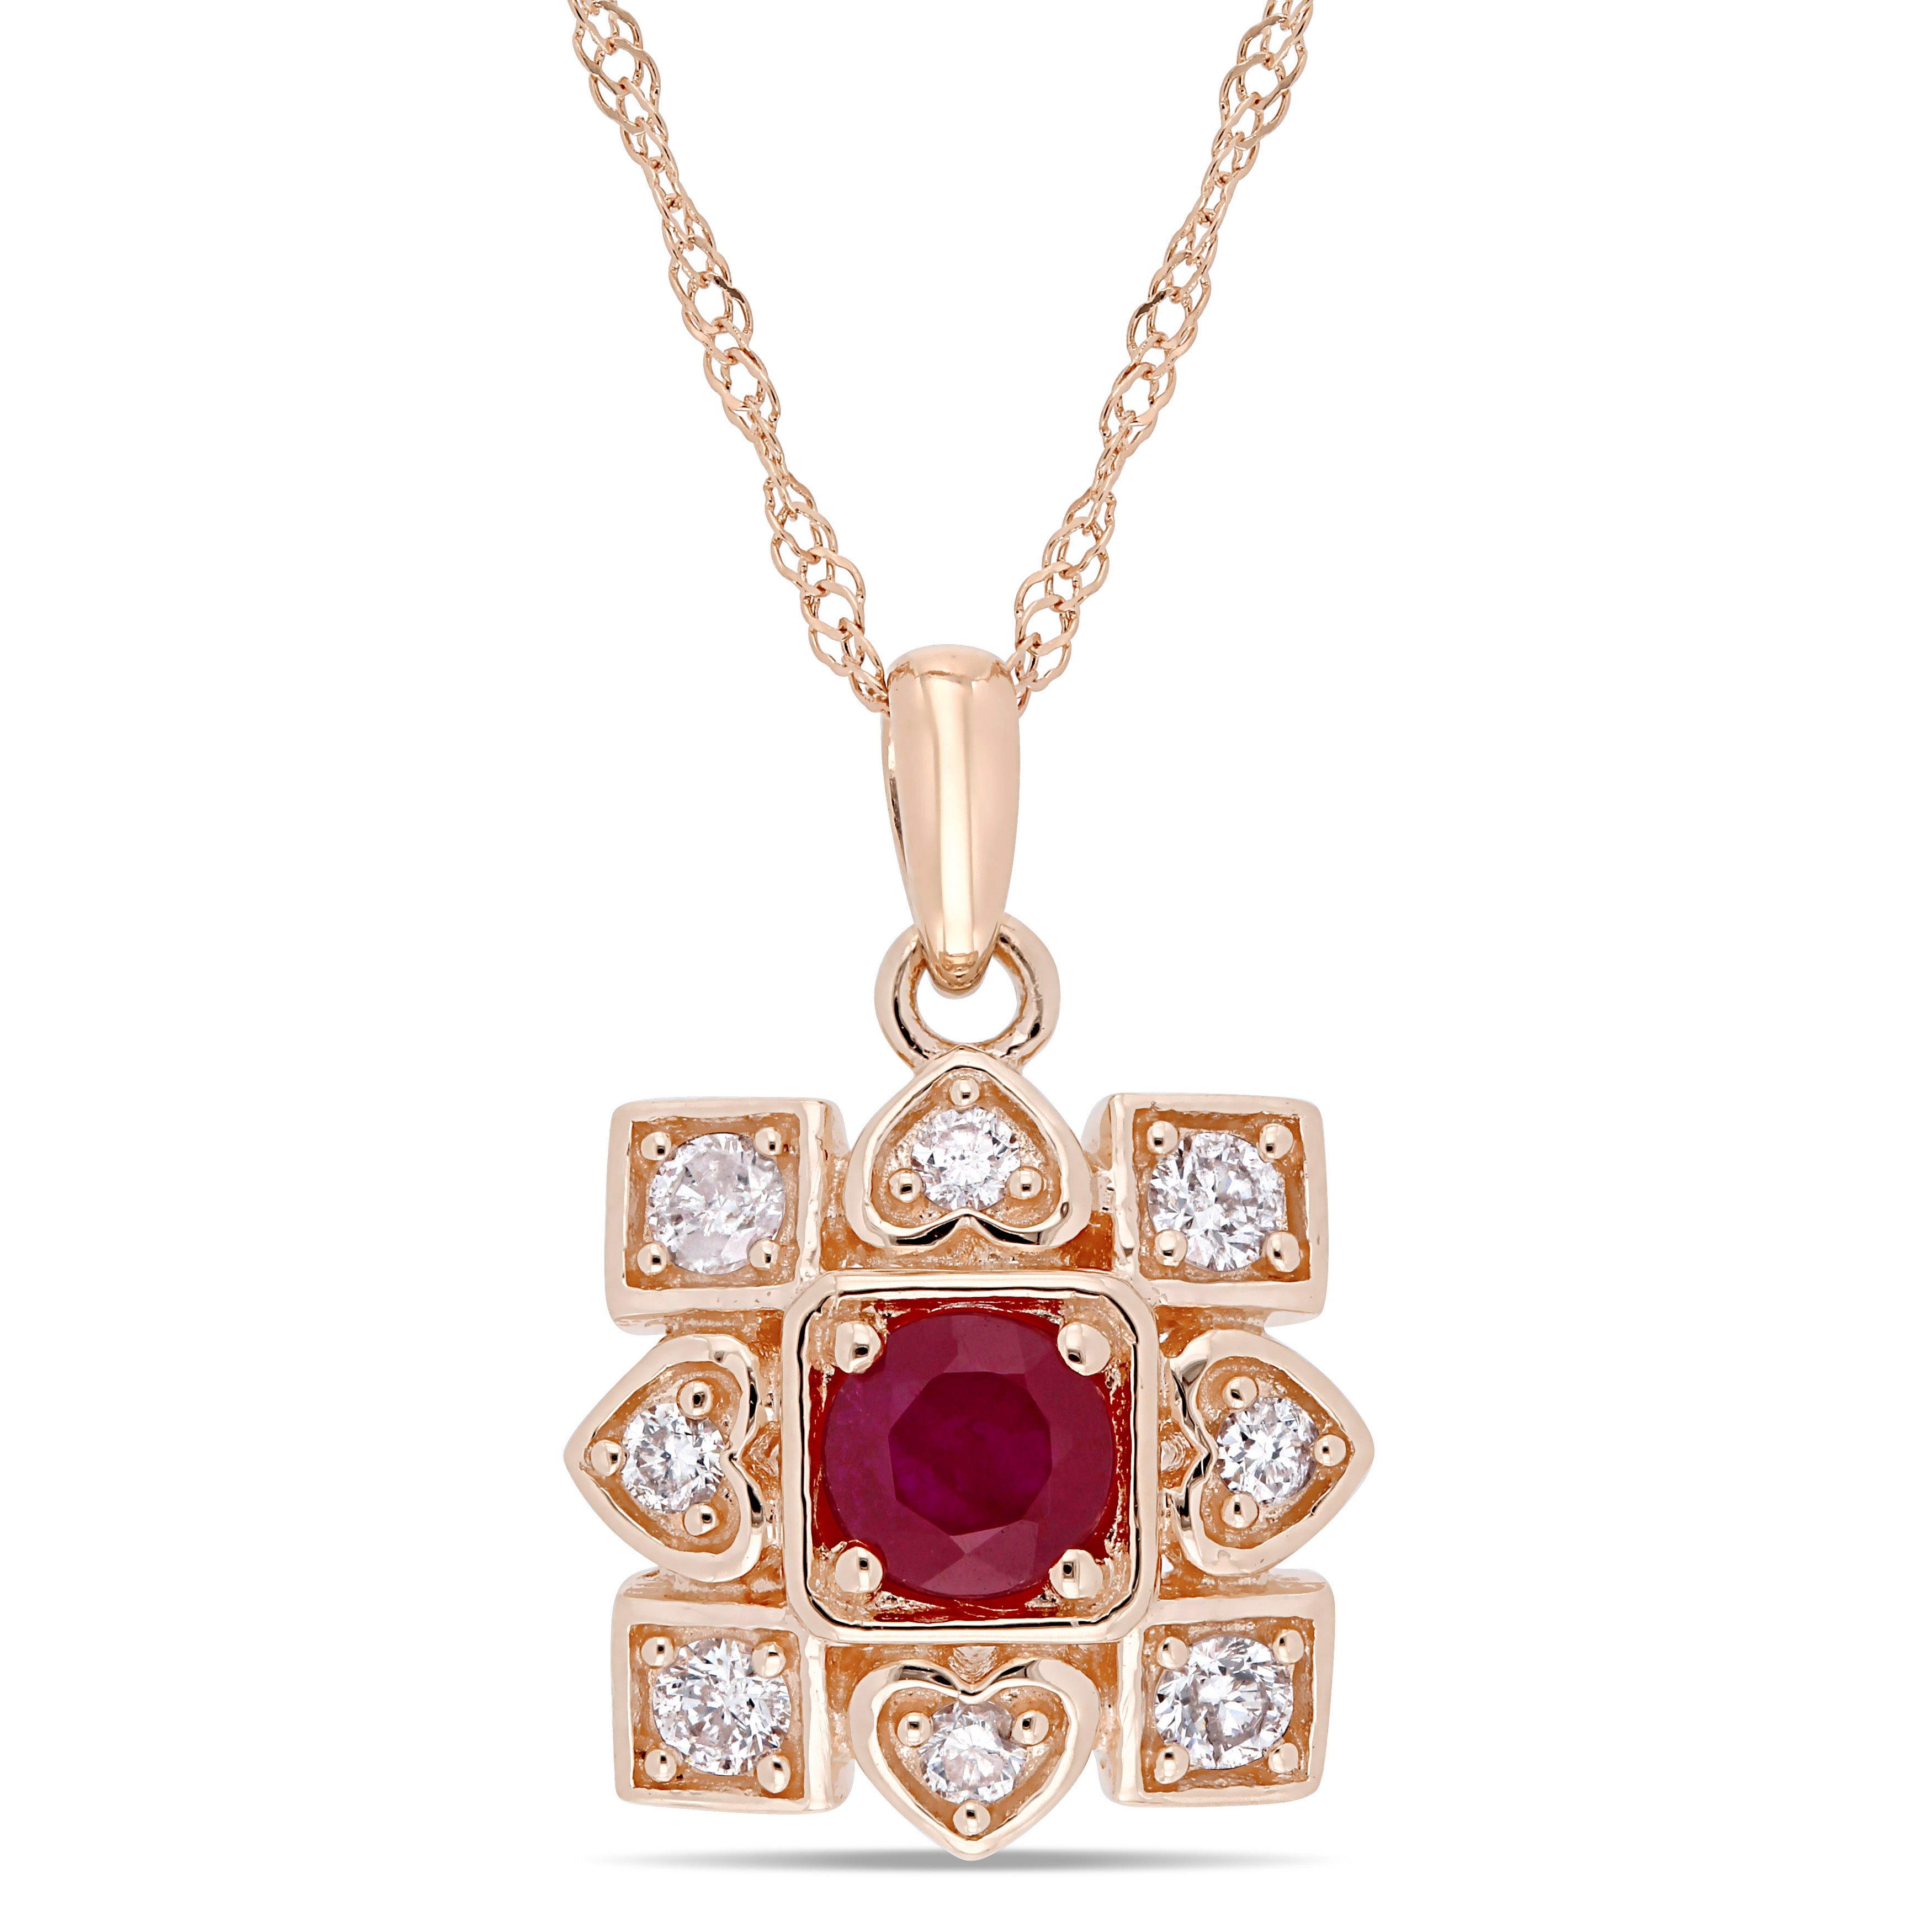 Everly Diamond & Ruby Fashion Pendant in 10k Rose Gold